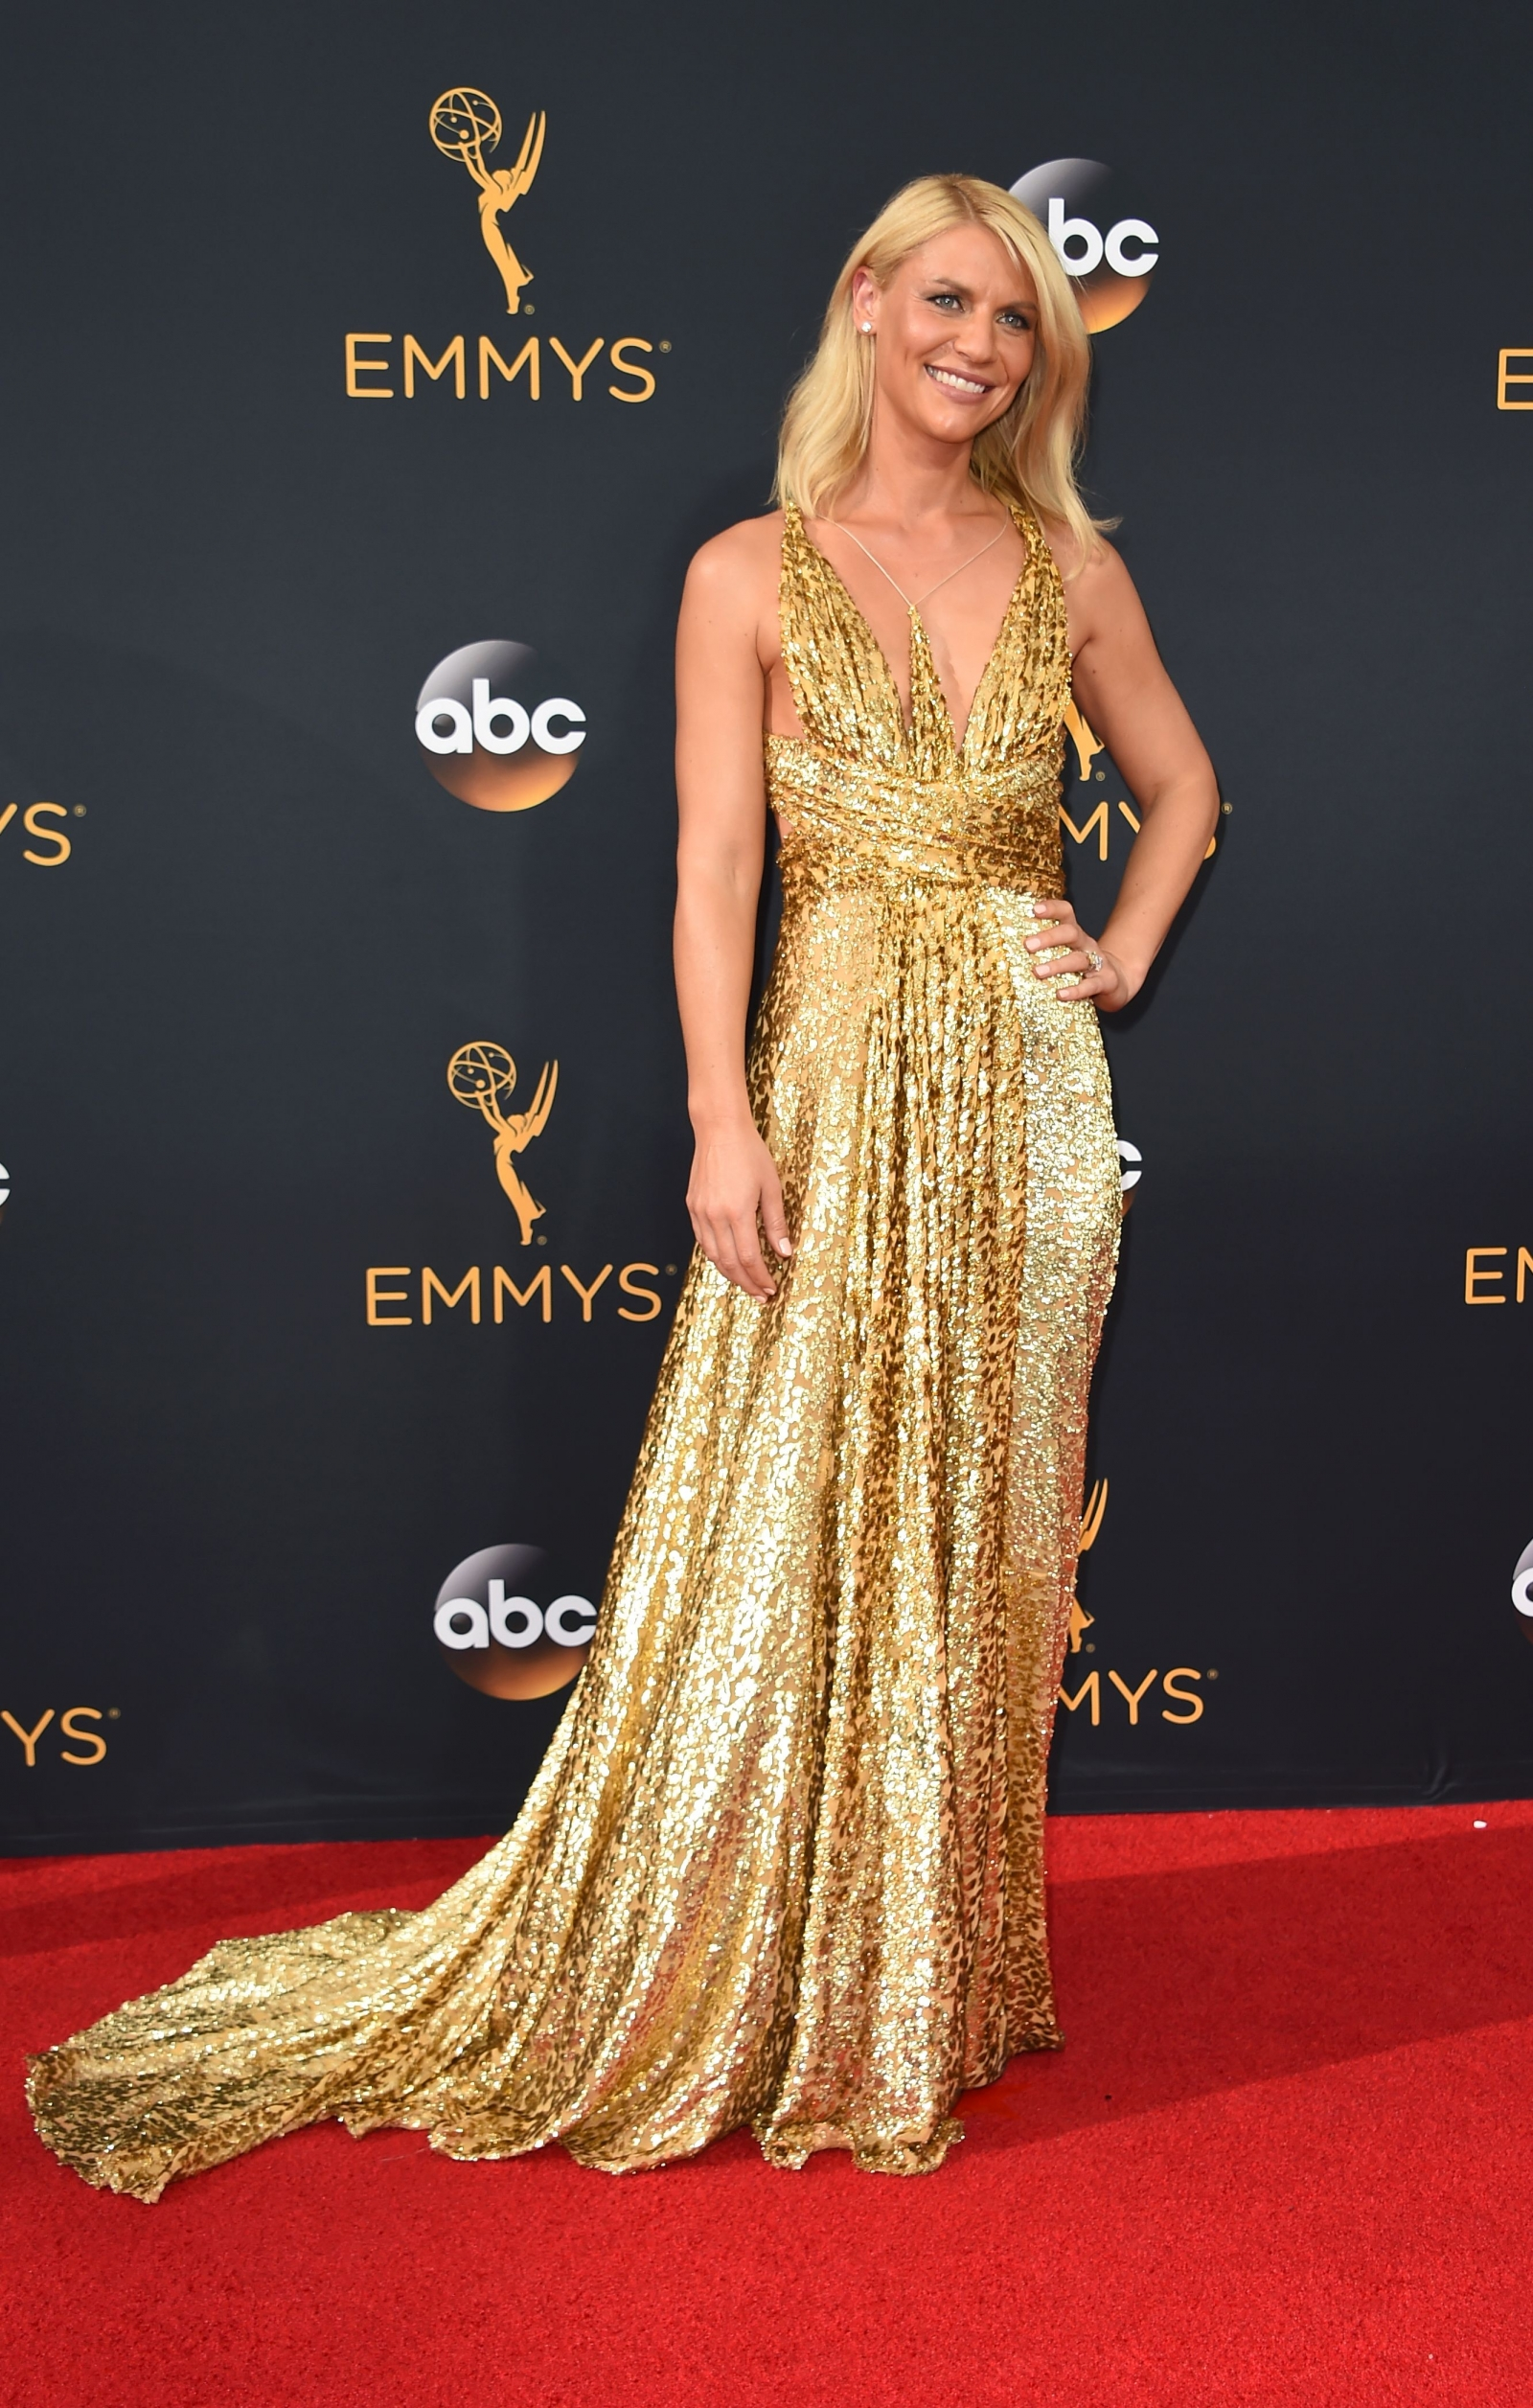 Emmys 2016 Most Colourful And Confident Red Carpet From